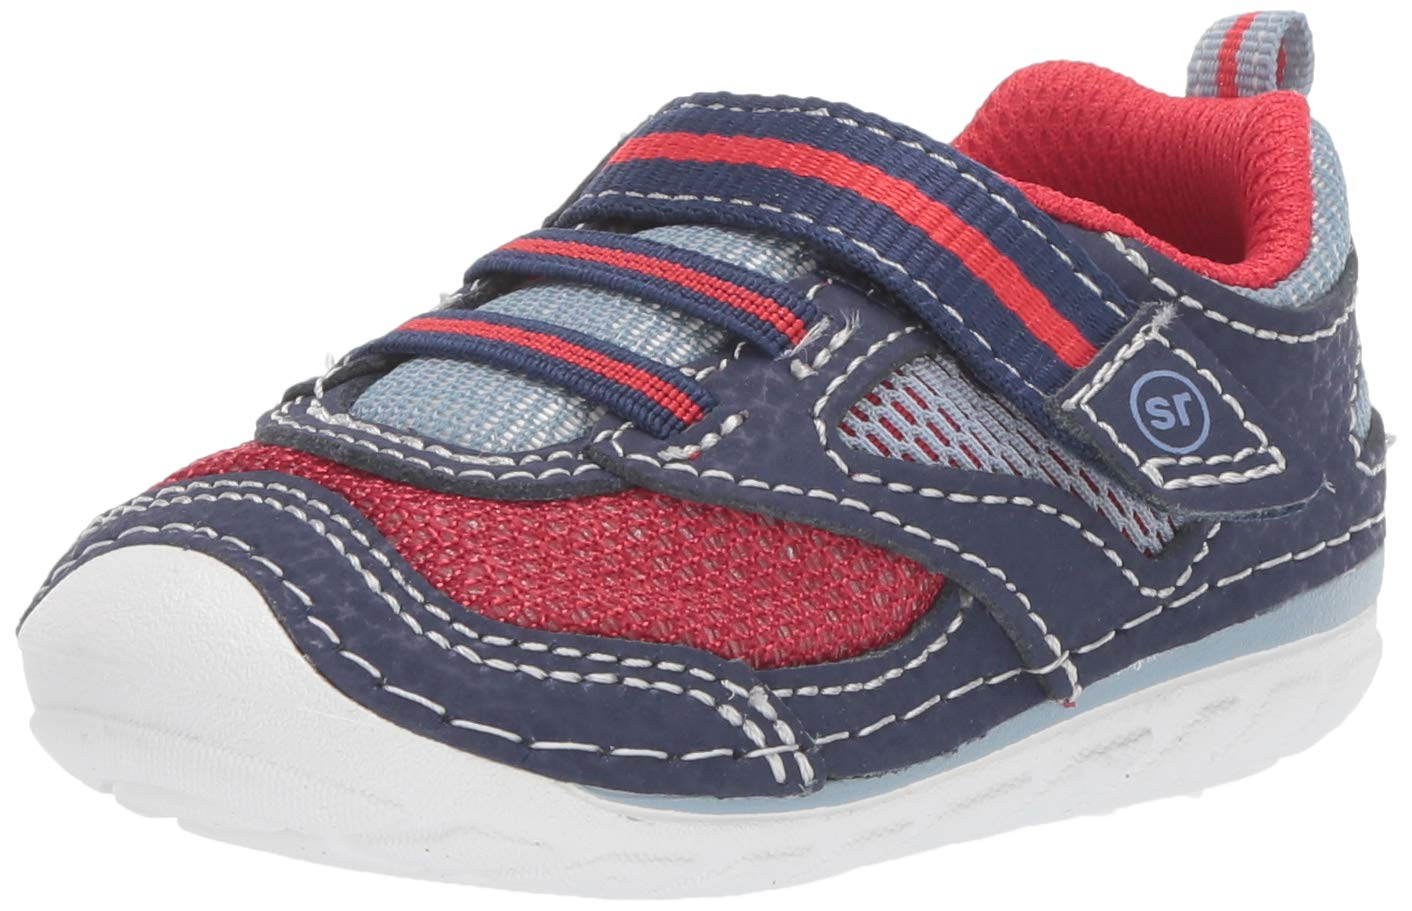 Stride Rite Boys' SM Adrian Sneaker, Navy/red, 6 W US Toddler